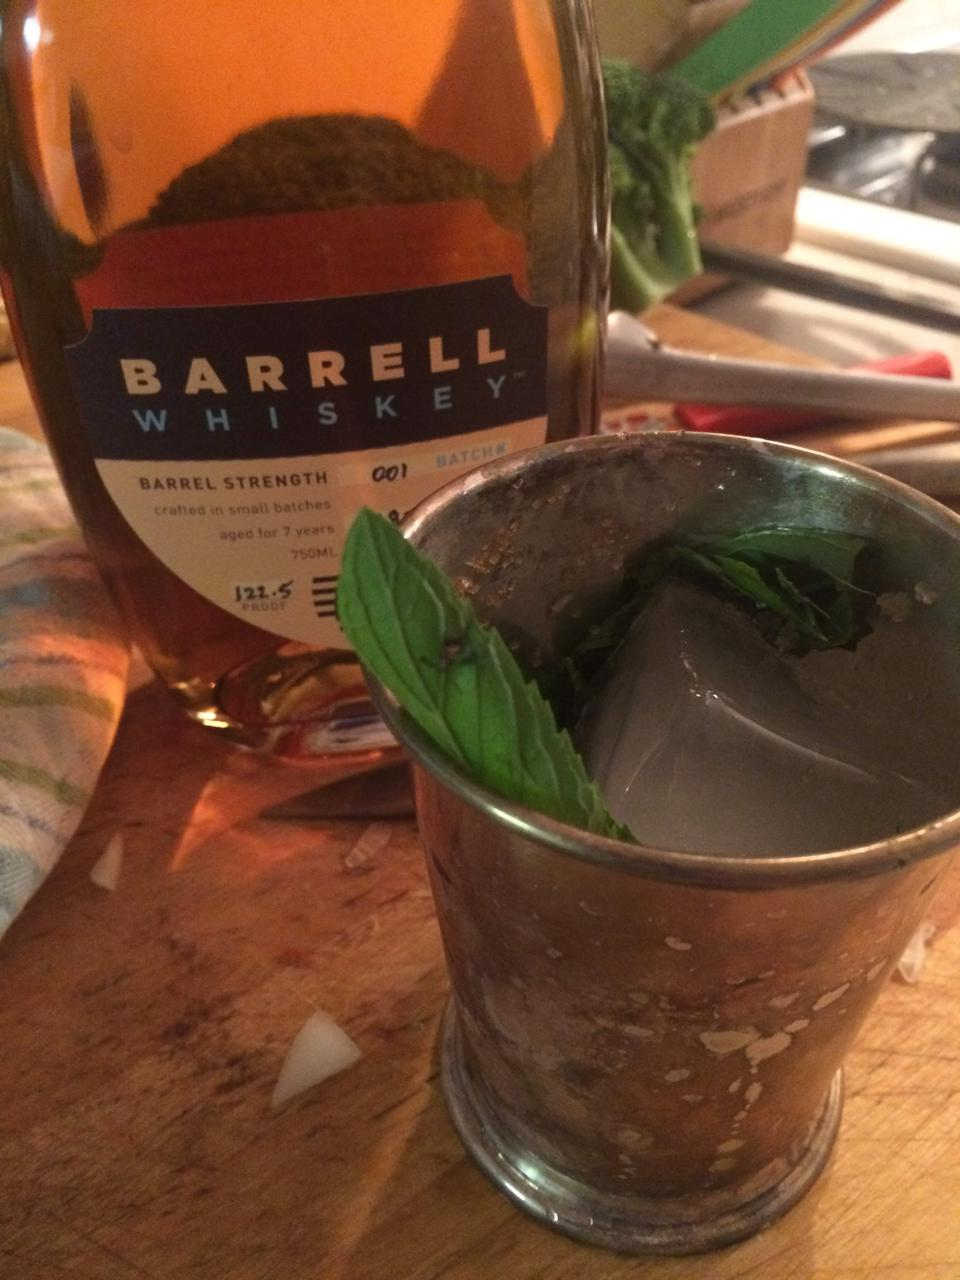 Barrell Whiskey out of my terribly unpolished mint julep cup